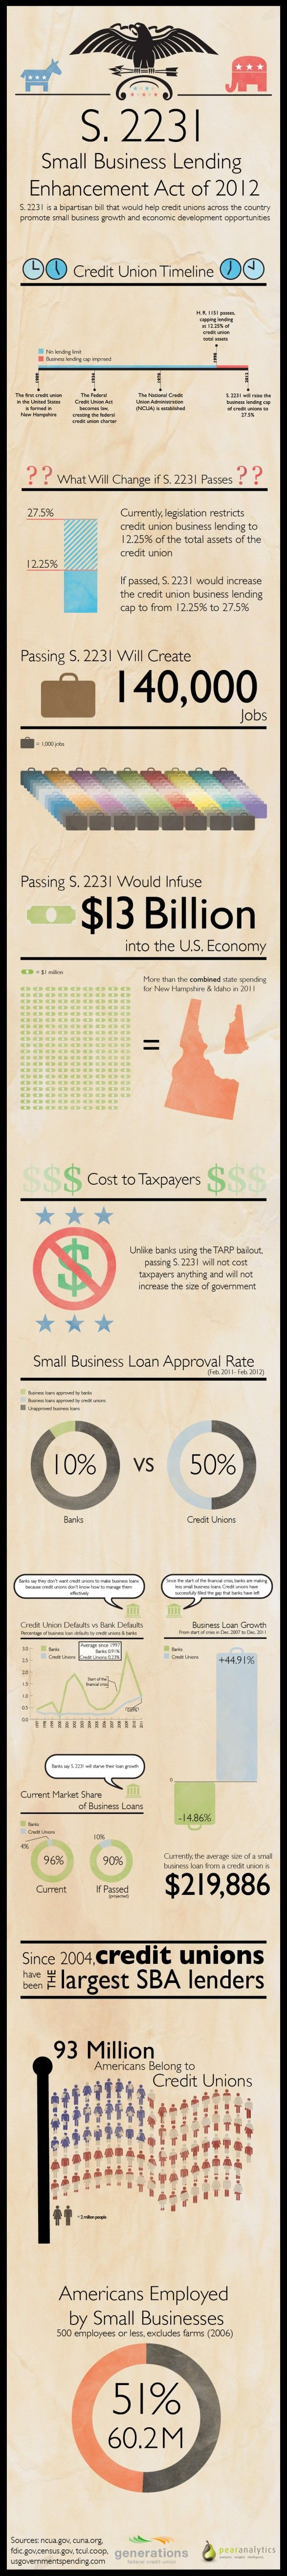 Knoxville tva credit union hours - Infographic Explaining The Small Business Lending Enhancement Act For Credit Unions Http